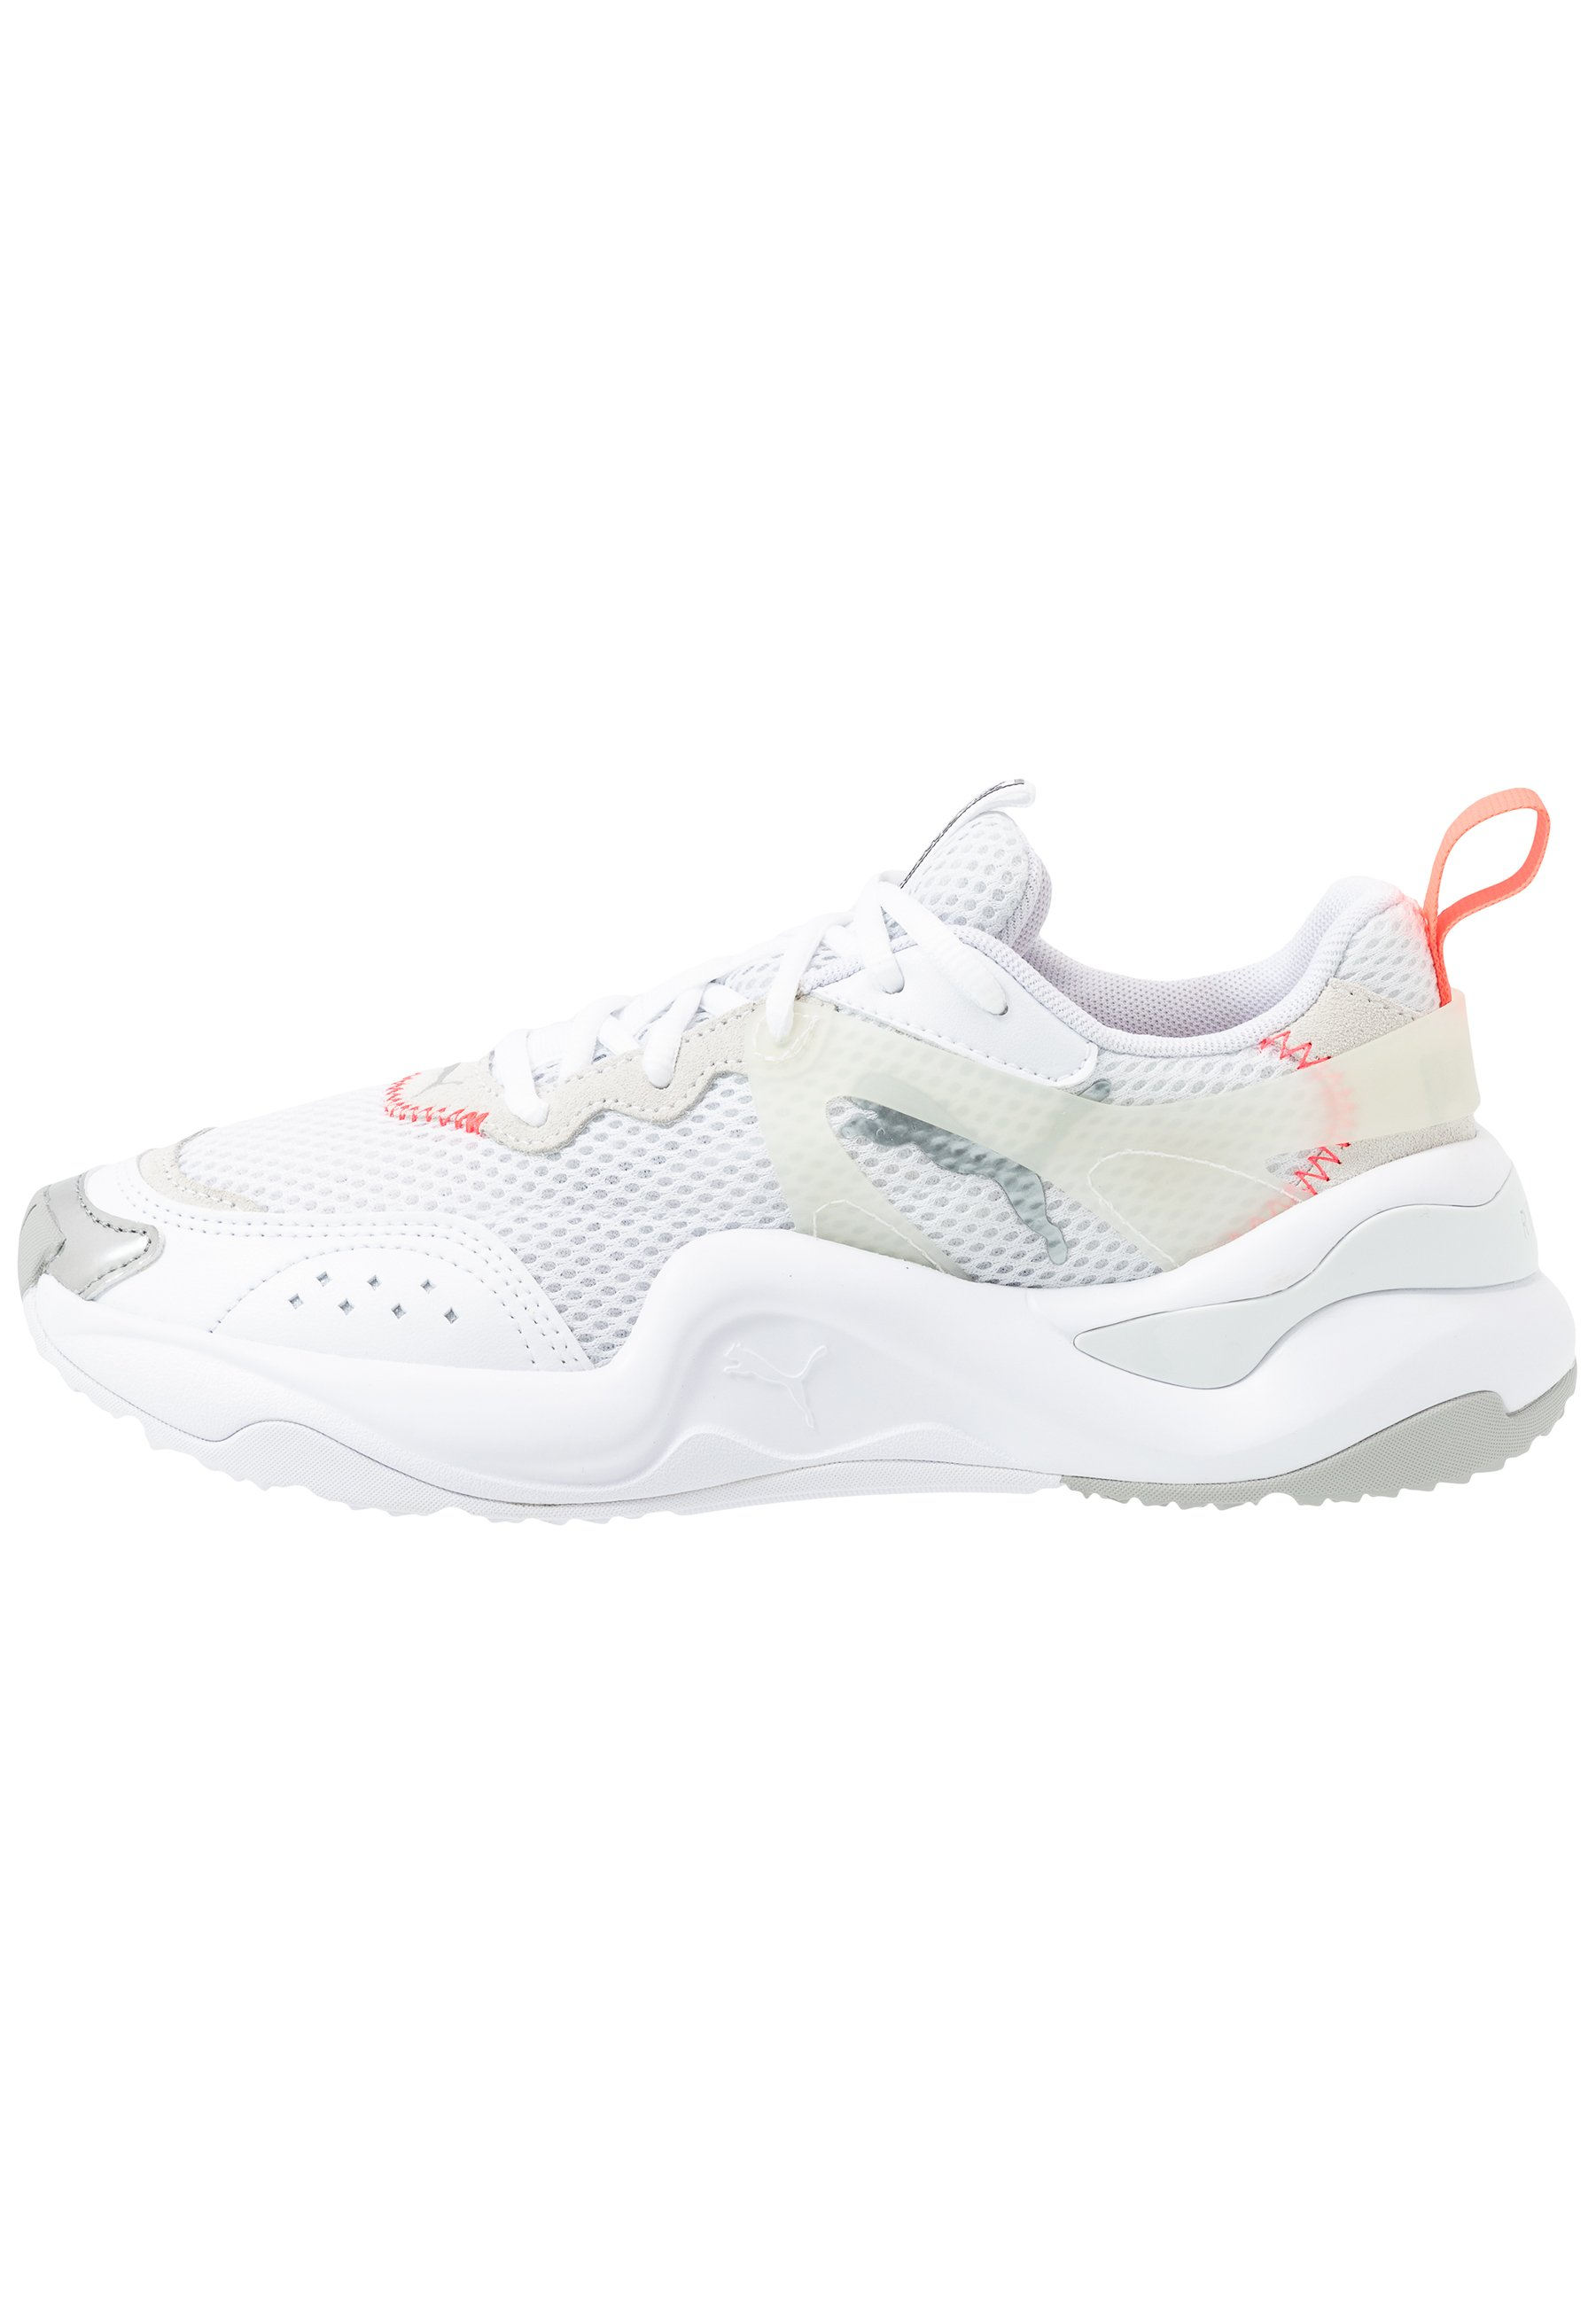 RISE CONTRAST - Trainers - white/ignite pink